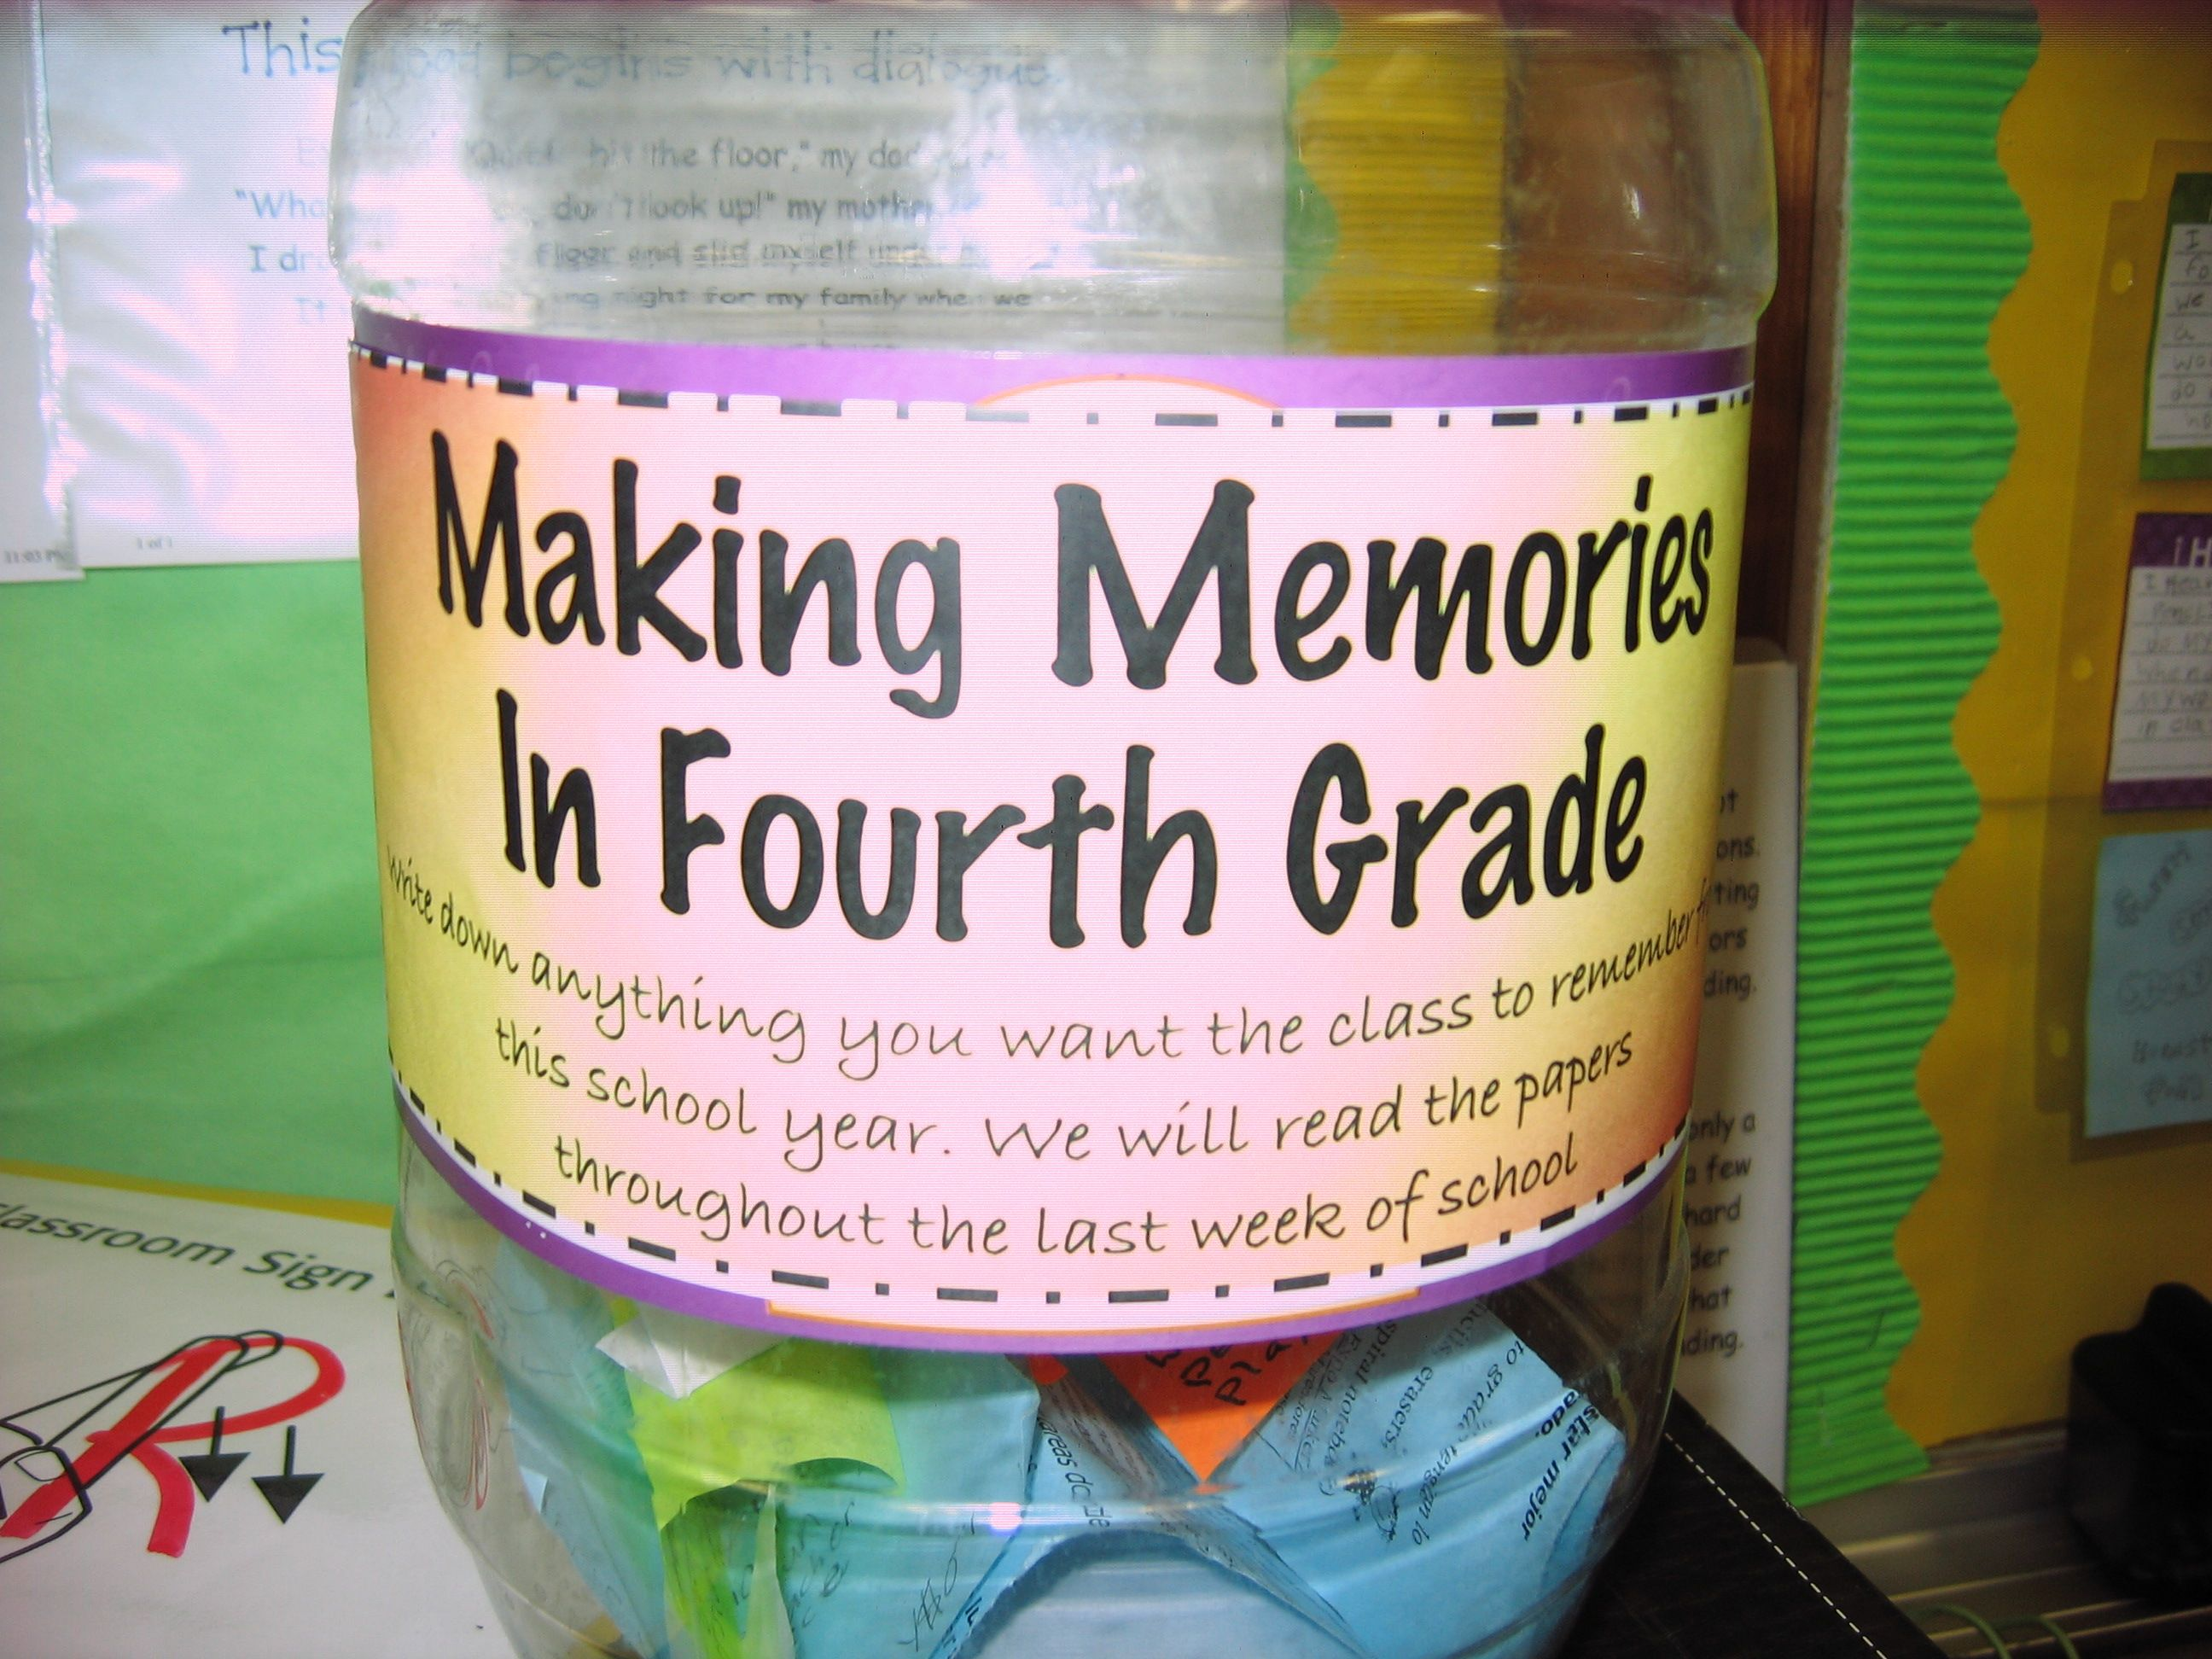 """Making Memories in __ Grade. """"Write down anything you want the class to remember this school year. We will read the papers throughout the last week of school. (Started the first week of school. This jar is jam-packed full and we still have a few more weeks left!)"""